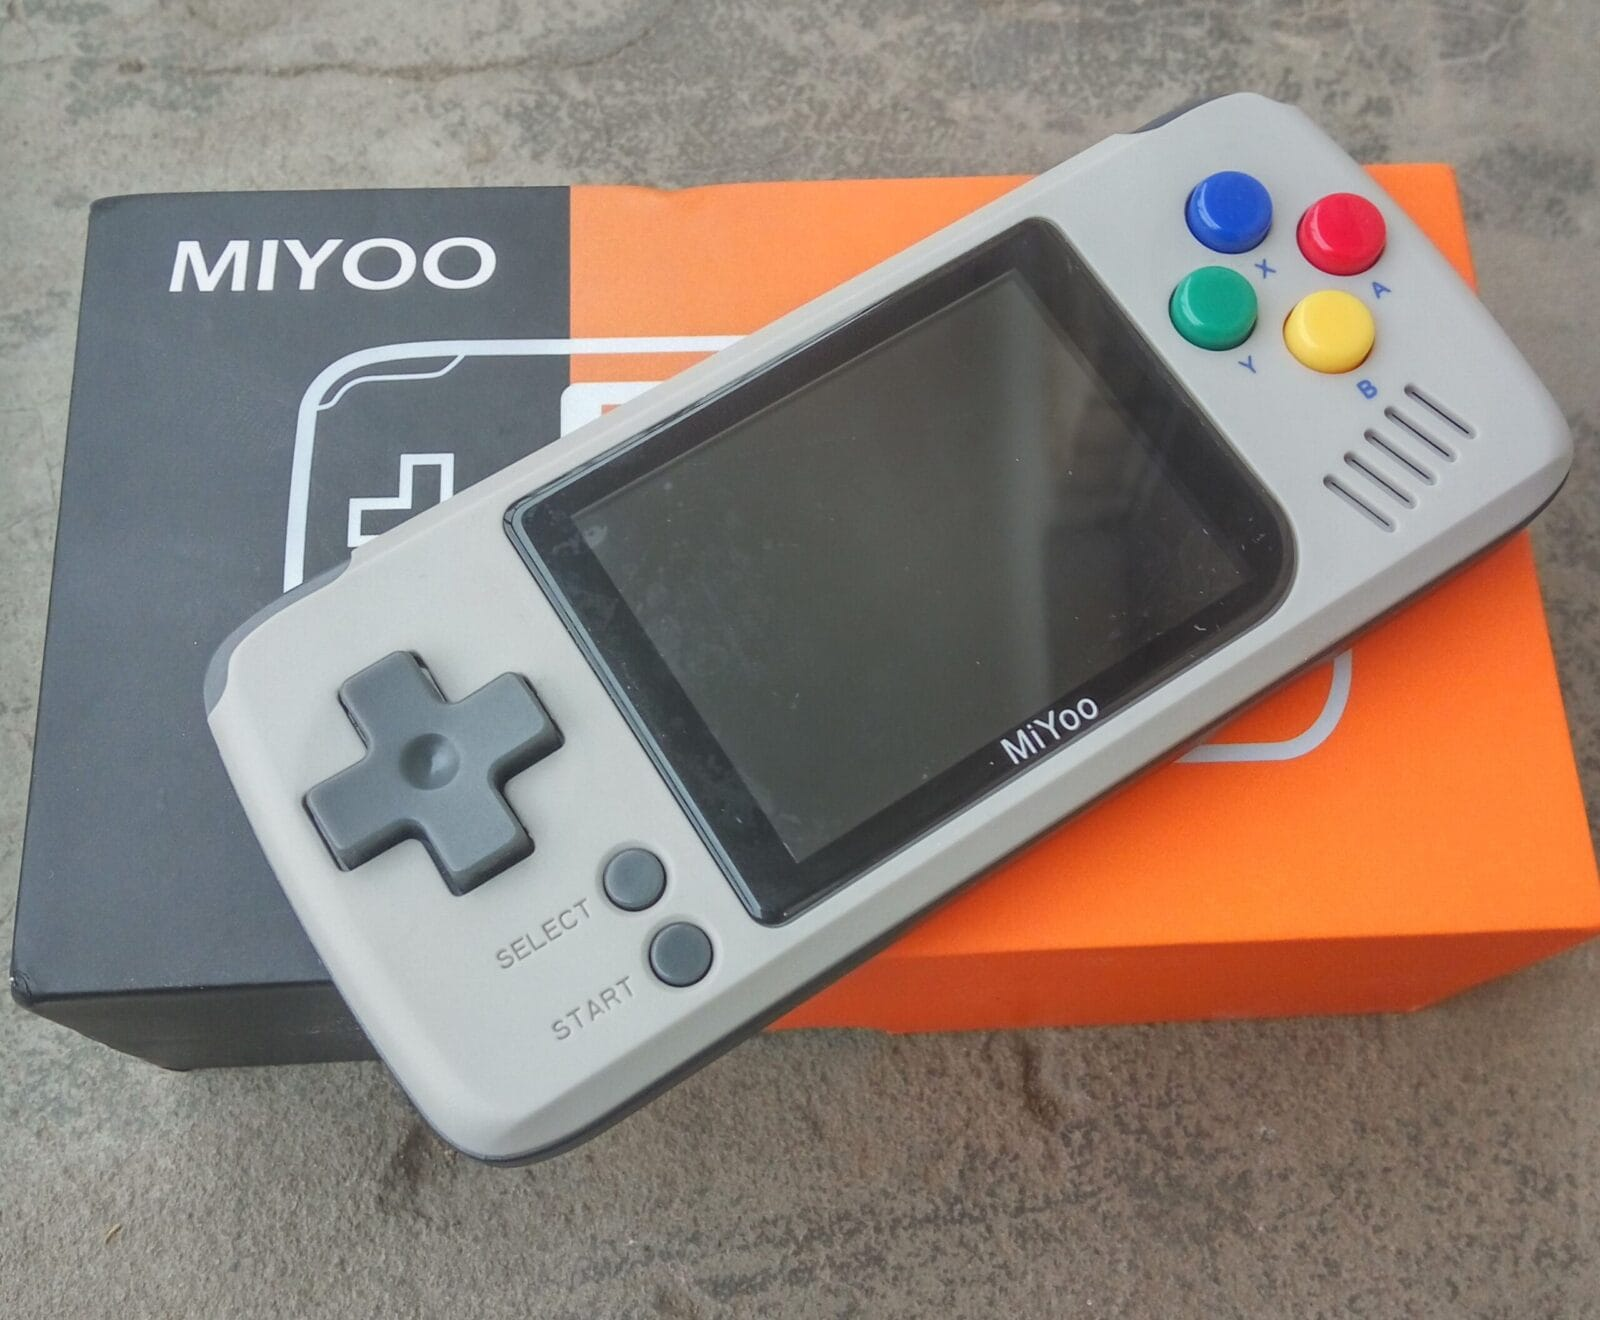 MIYOO Retro Game Console